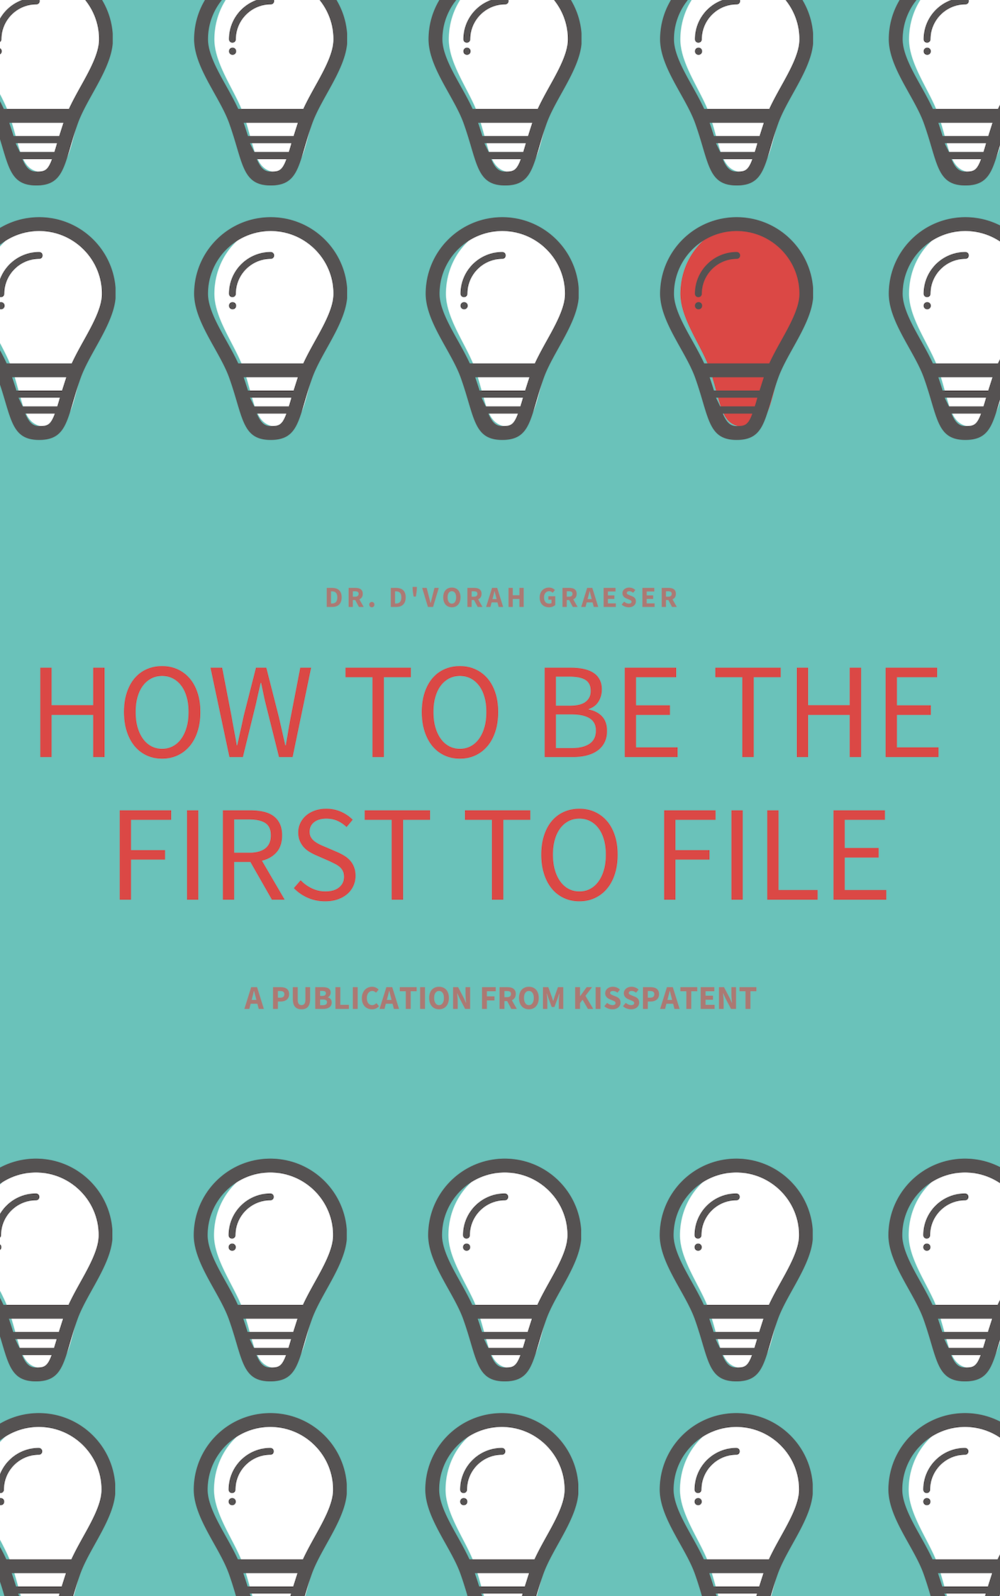 How to be first to file.png